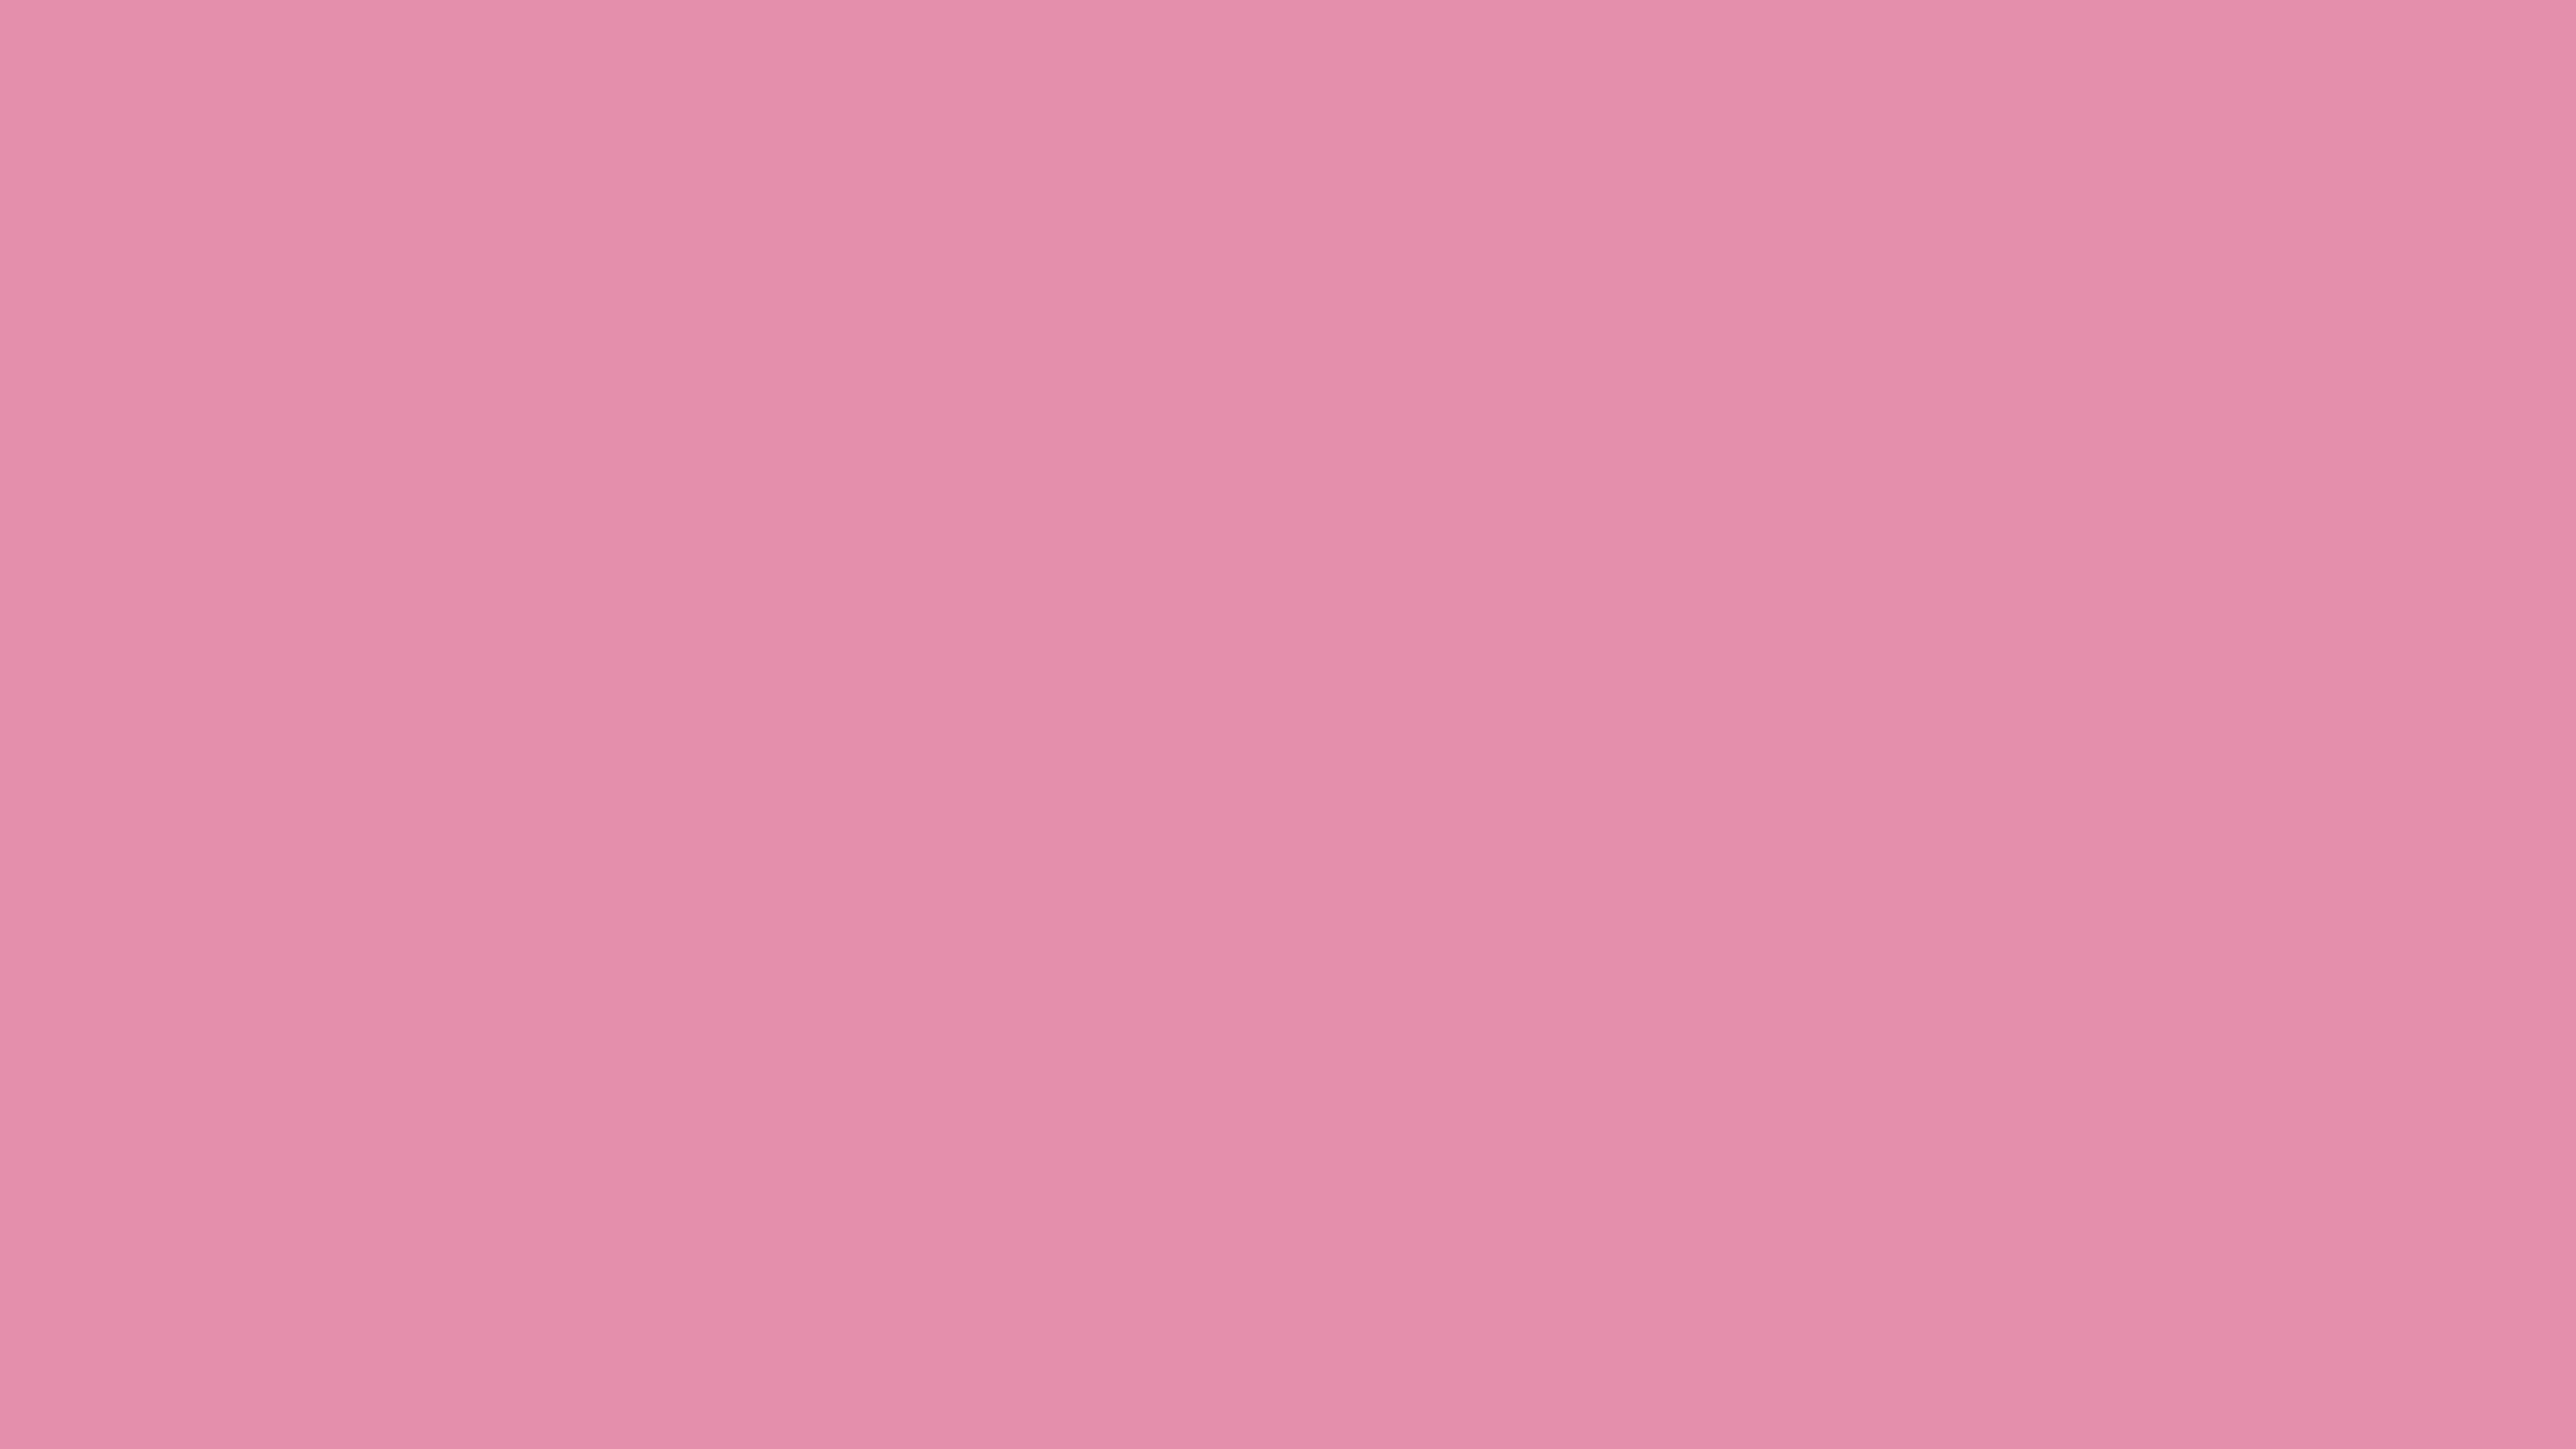 3840x2160 Charm Pink Solid Color Background